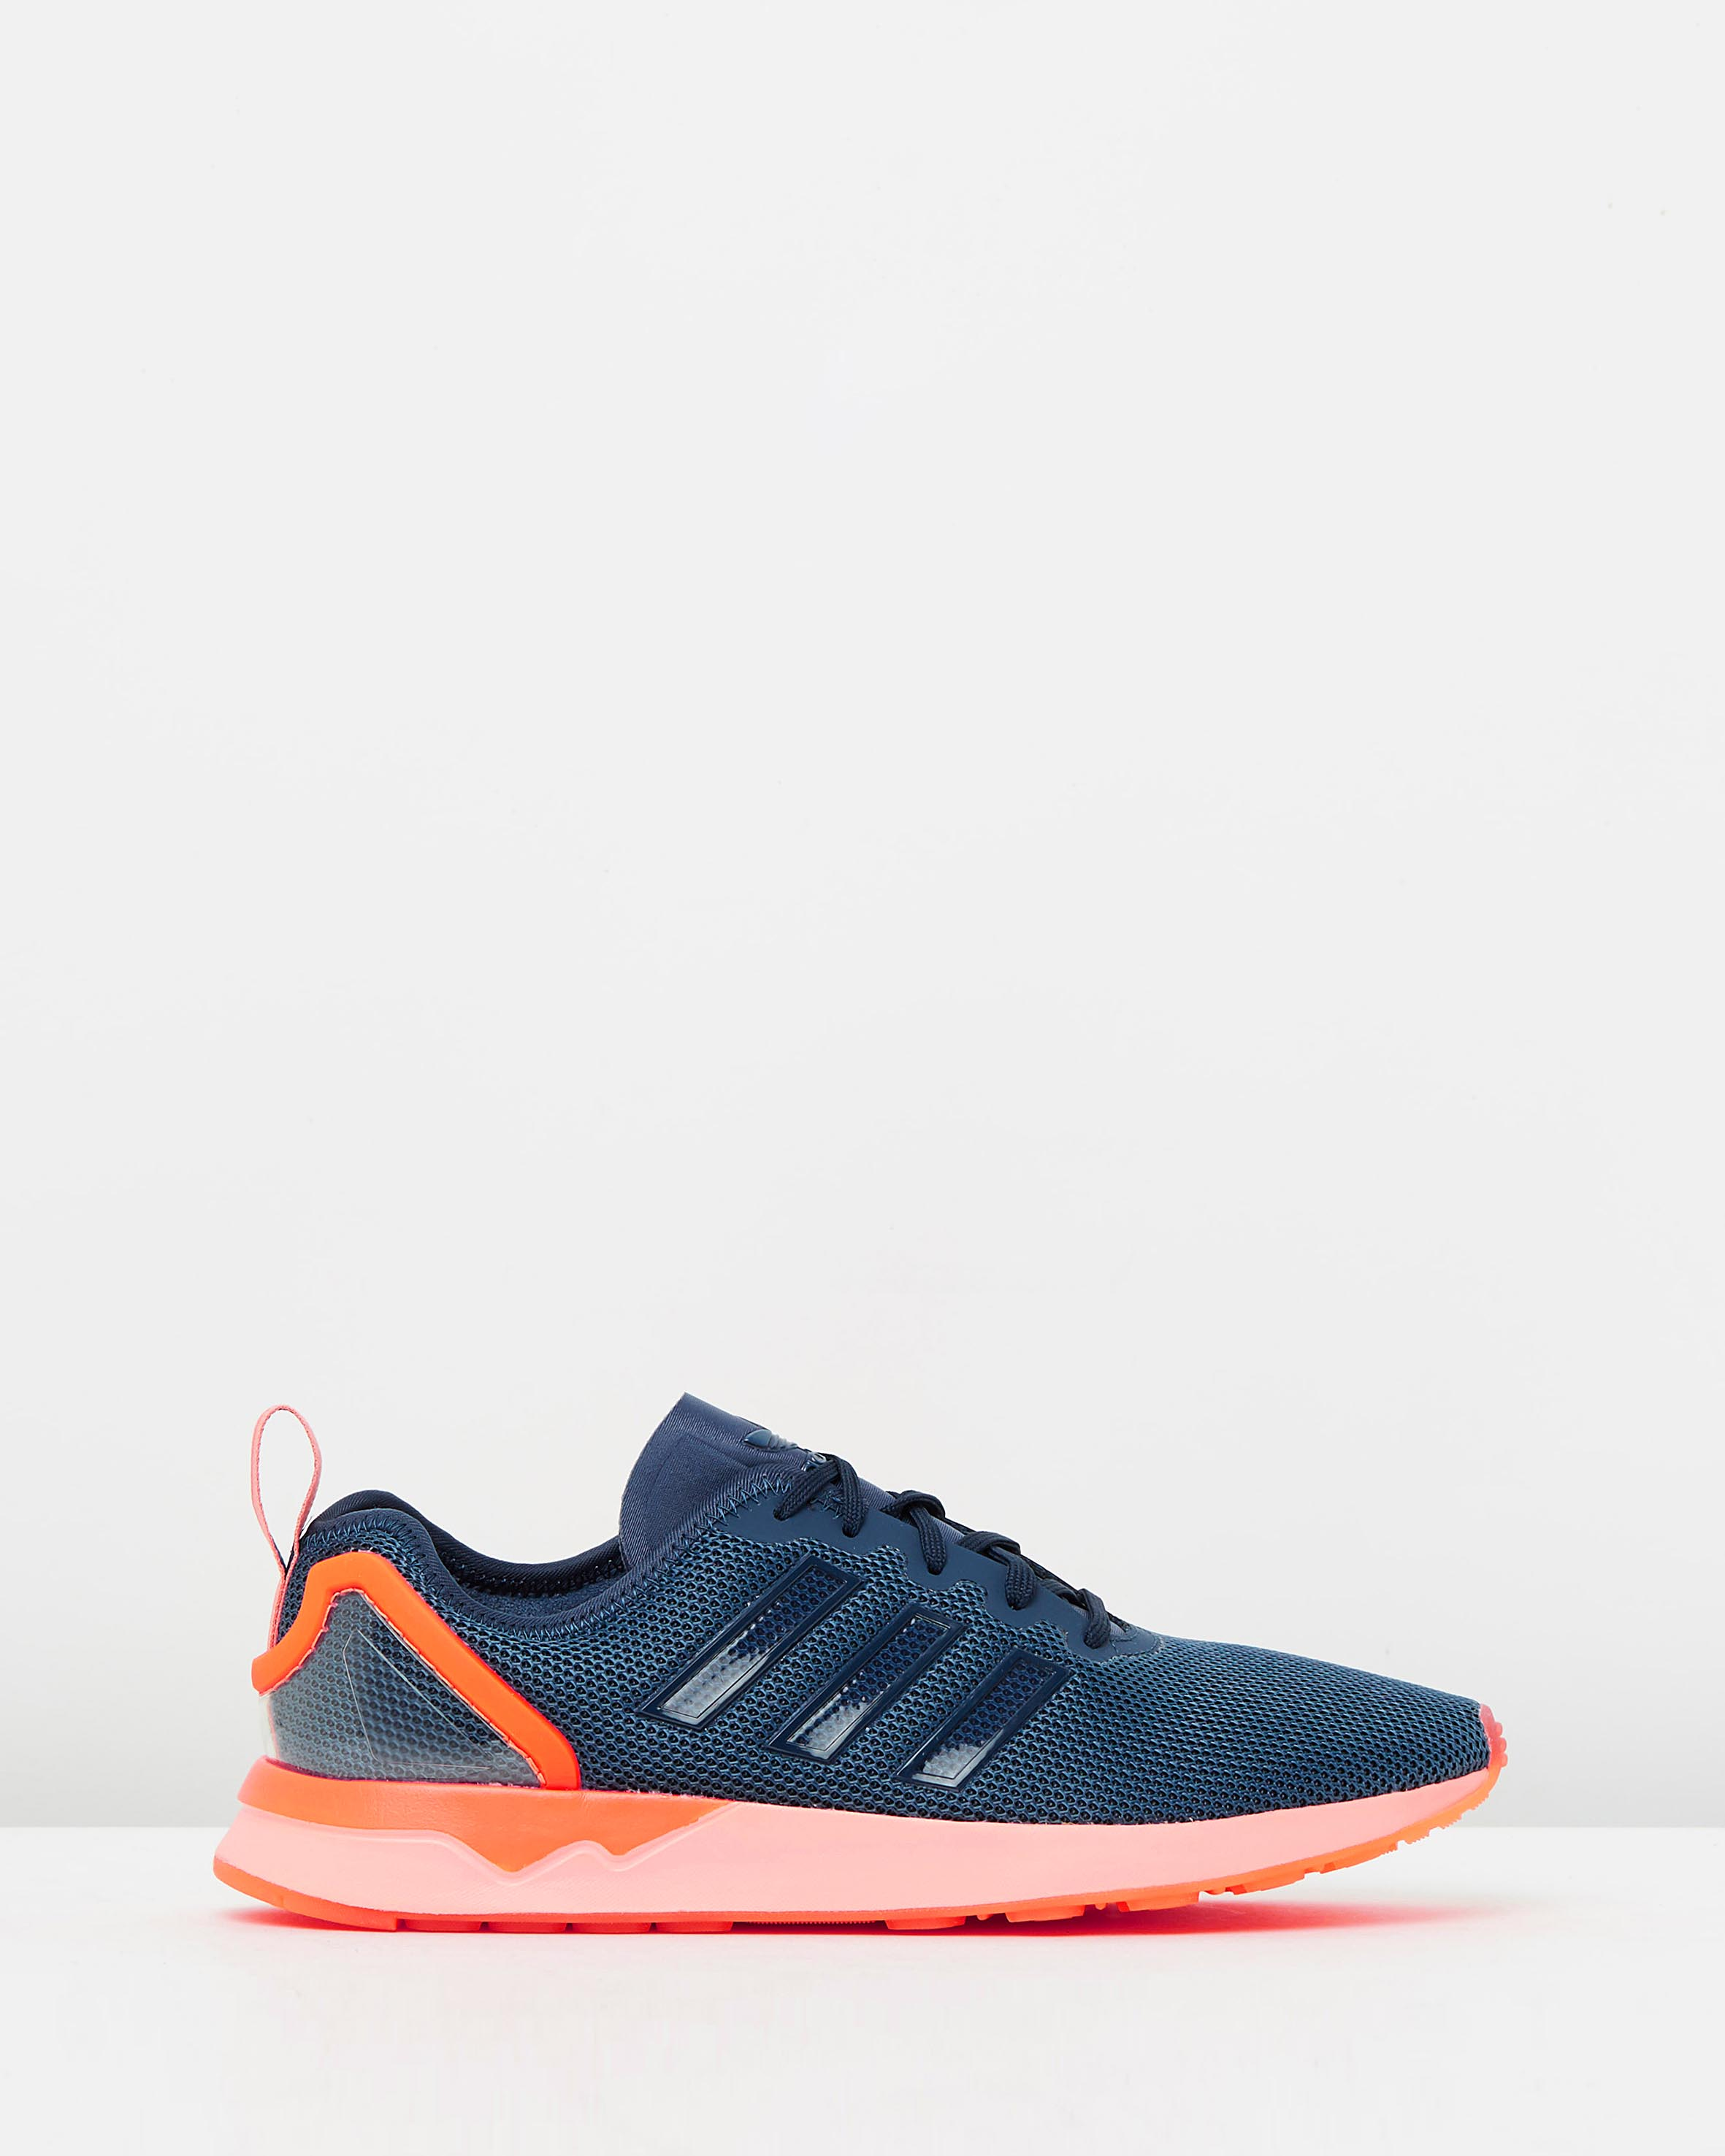 huge selection of c43fc f1744 Adidas ZX Flux ADV Blue & Orange